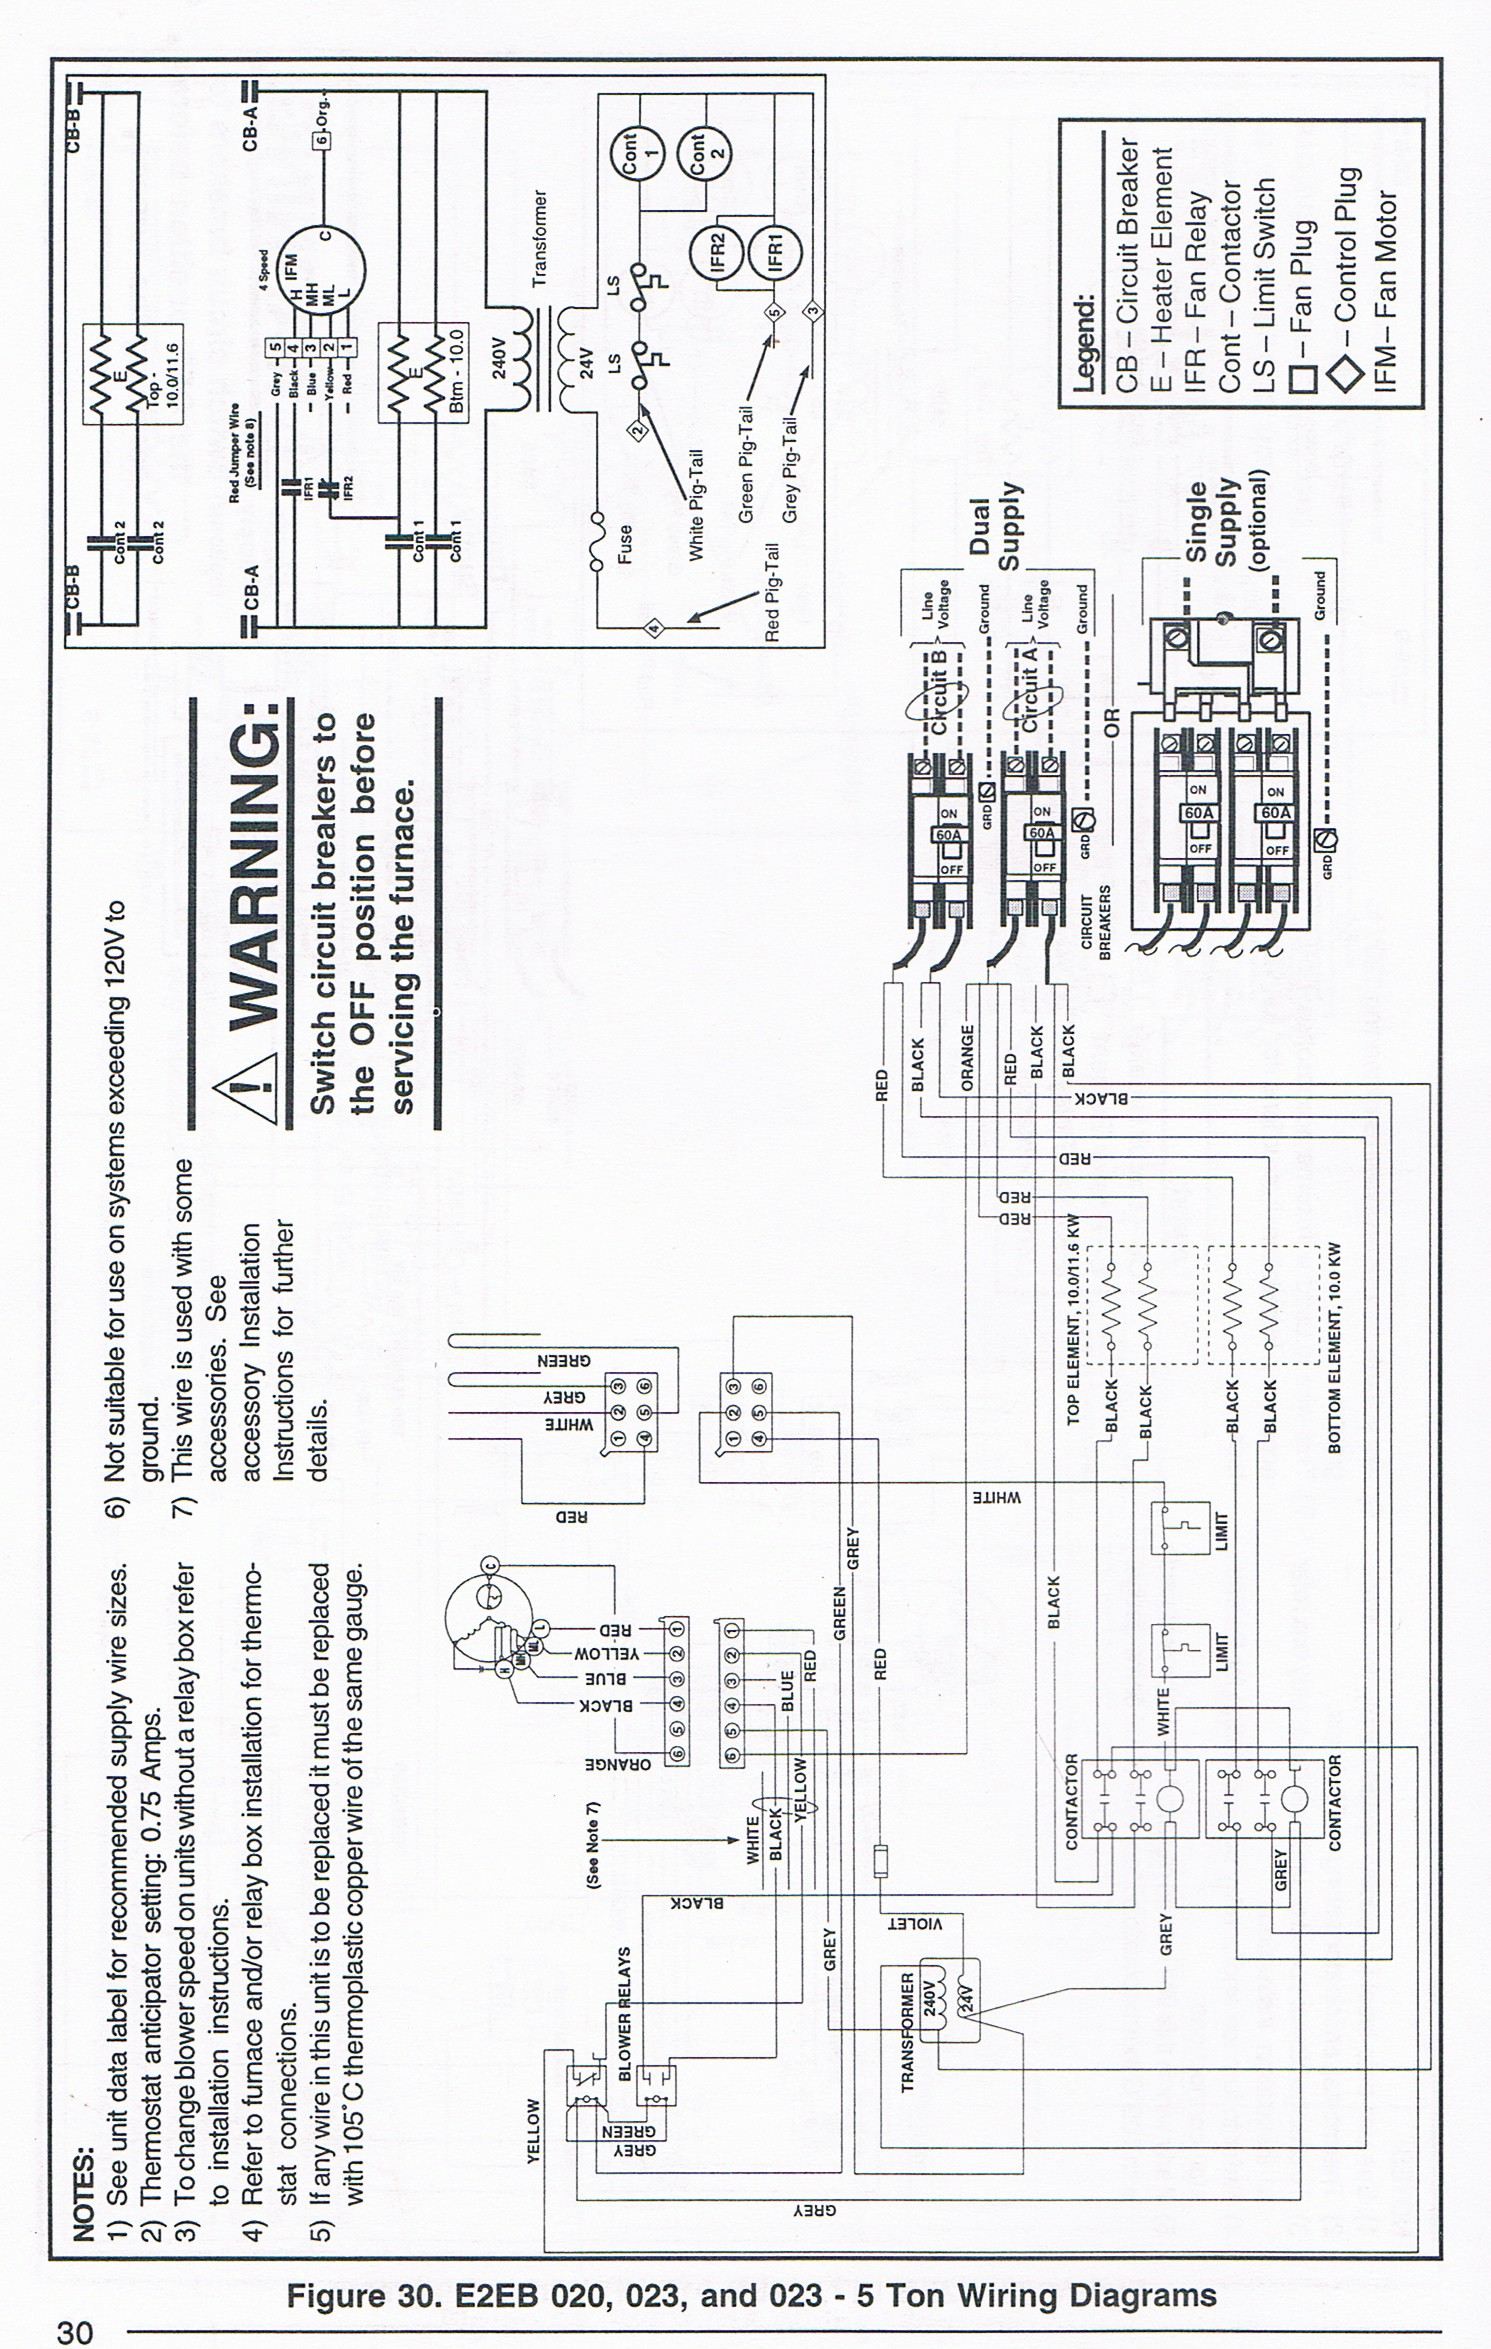 Fasco D729 Wiring Diagram | Wiring Liry on